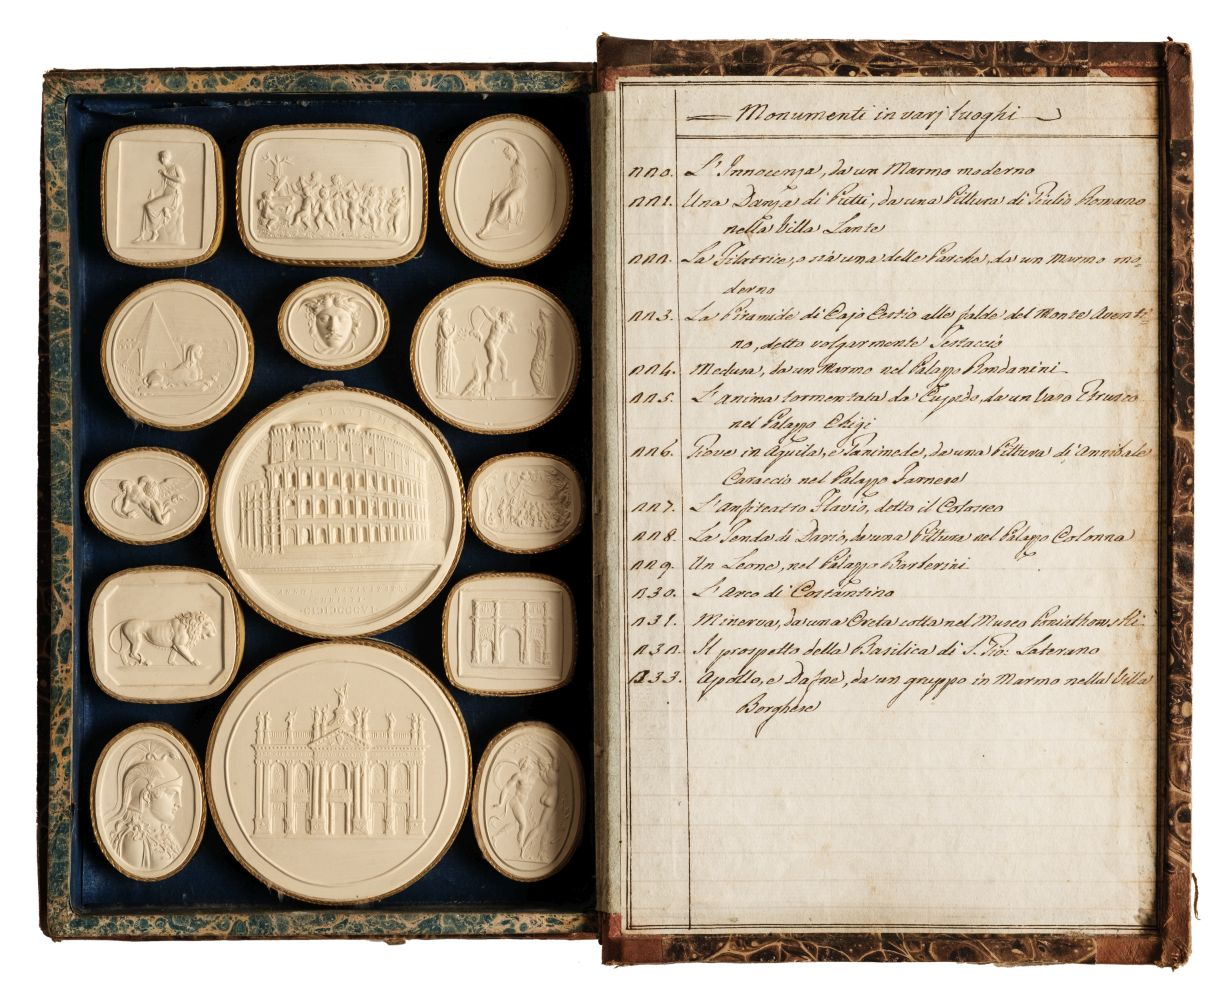 Paoletti (Bartolomeo and Pietro). A collection of 300 plaster cameos, 1820 - Image 3 of 16